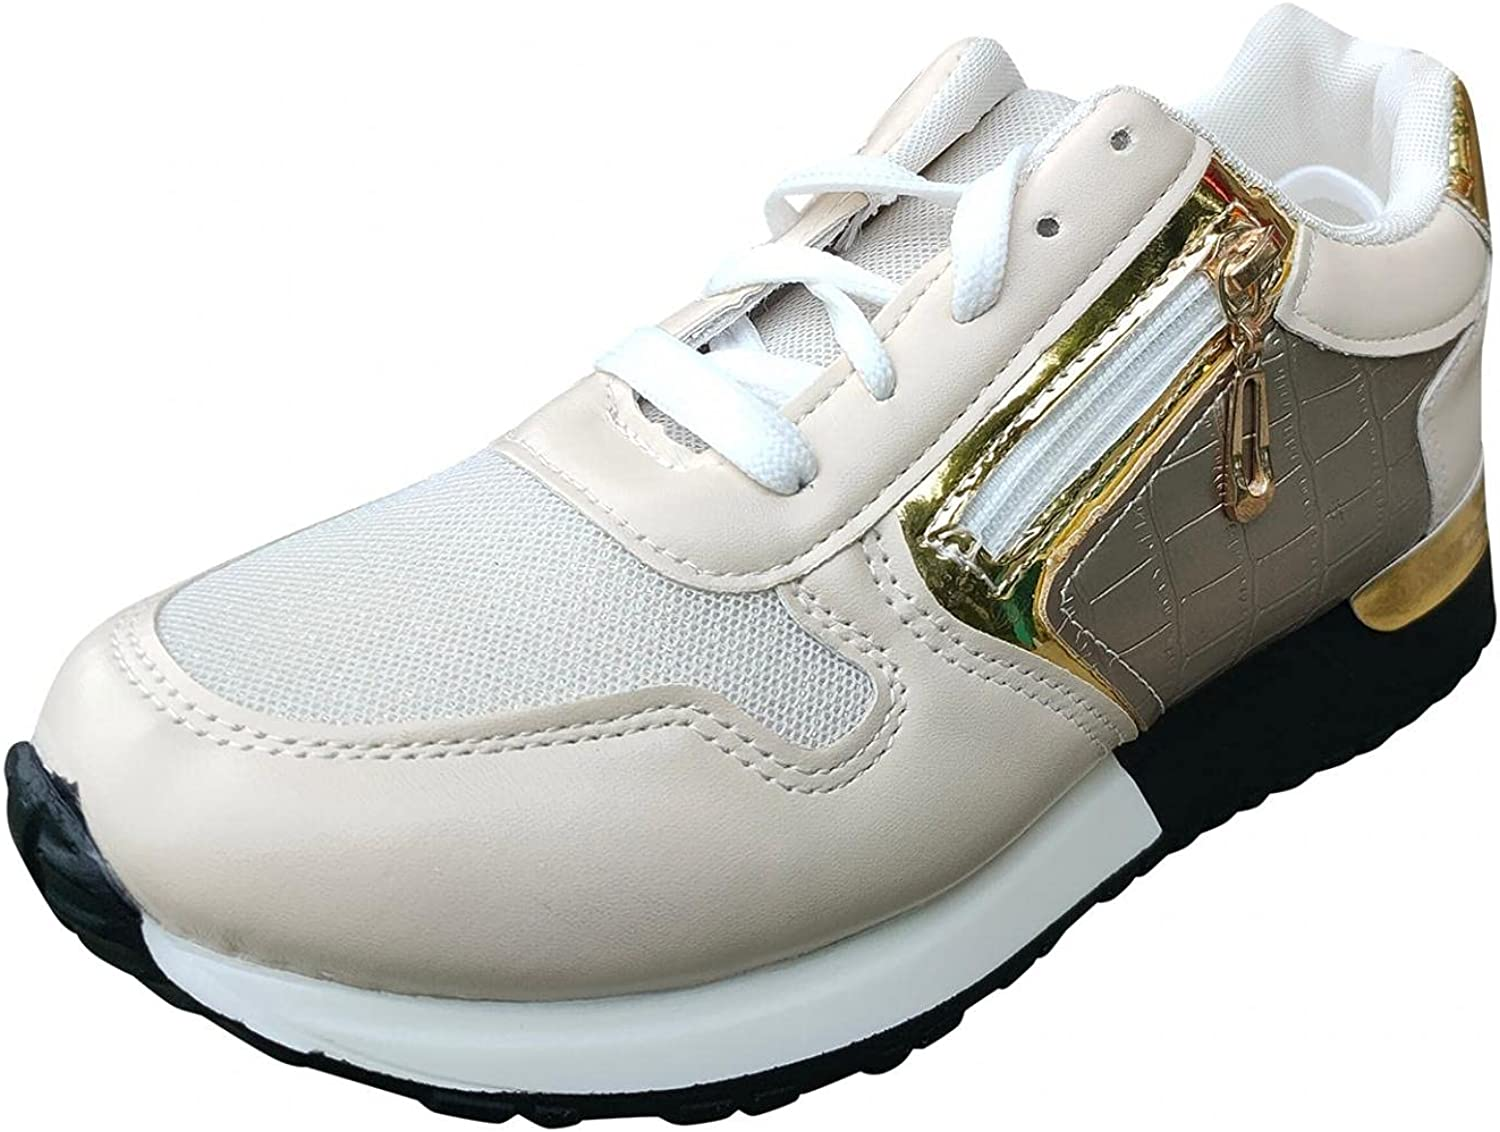 ZHANSANFM Fashion Fashionable Women's Casual Breathable Slip-on Shoes Ranking integrated 1st place Wedges